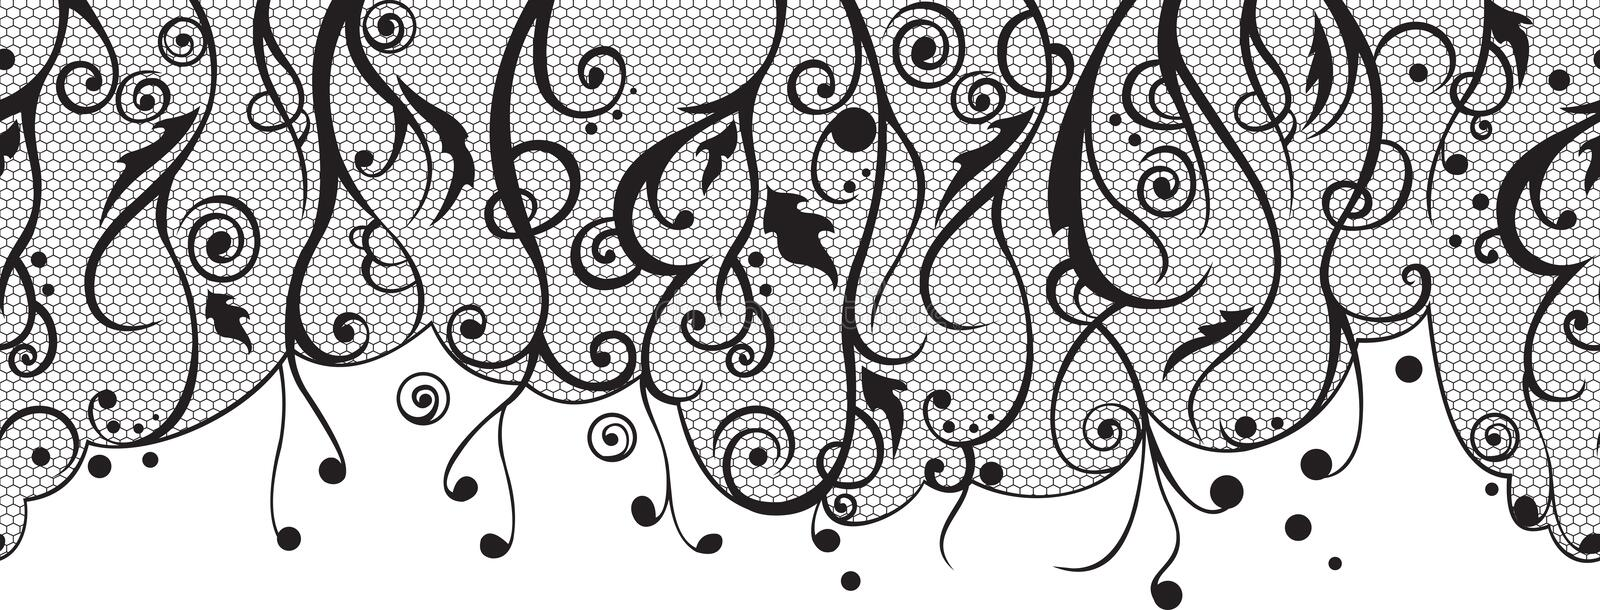 Tender lace pattern vector illustration